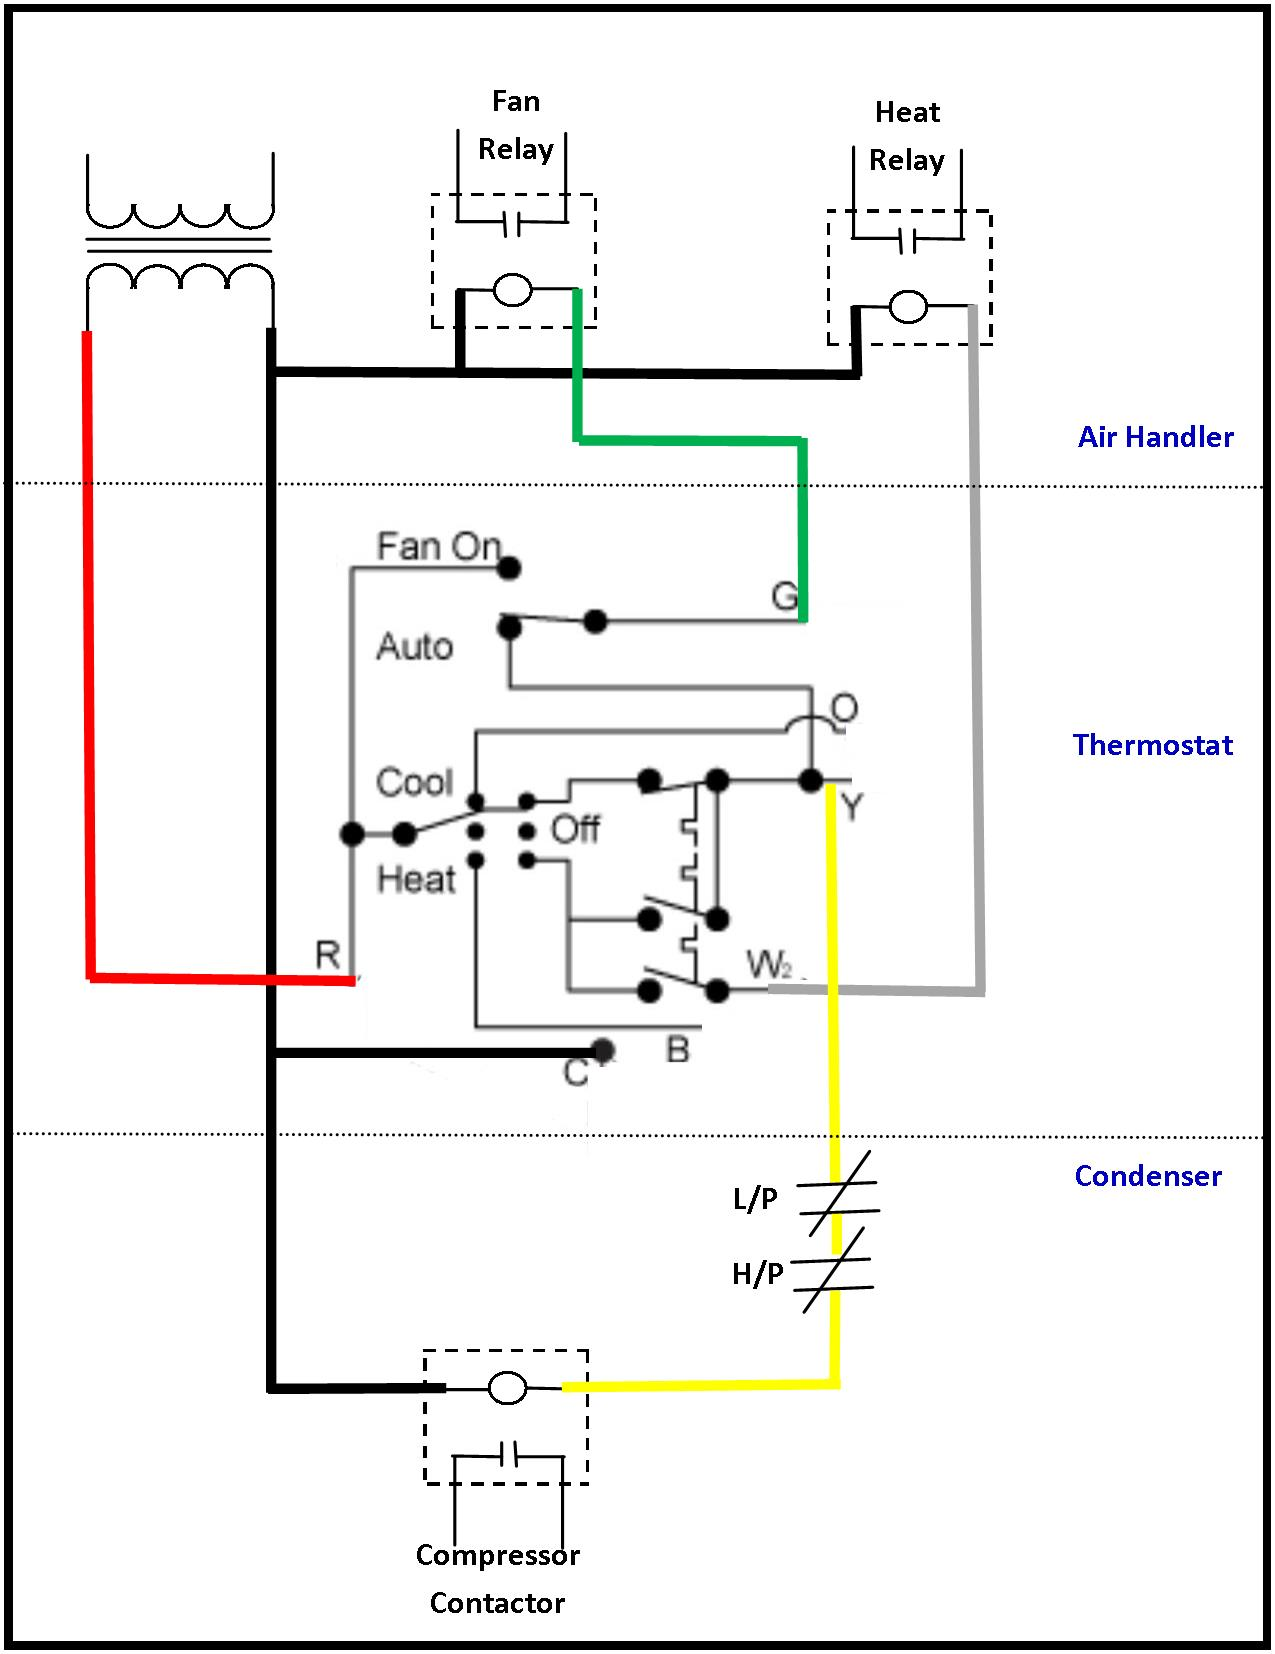 AC low voltage wiring diagram1 hvac contactor wiring diagram hvac condenser wiring diagram 24v thermostat wiring diagram at gsmx.co